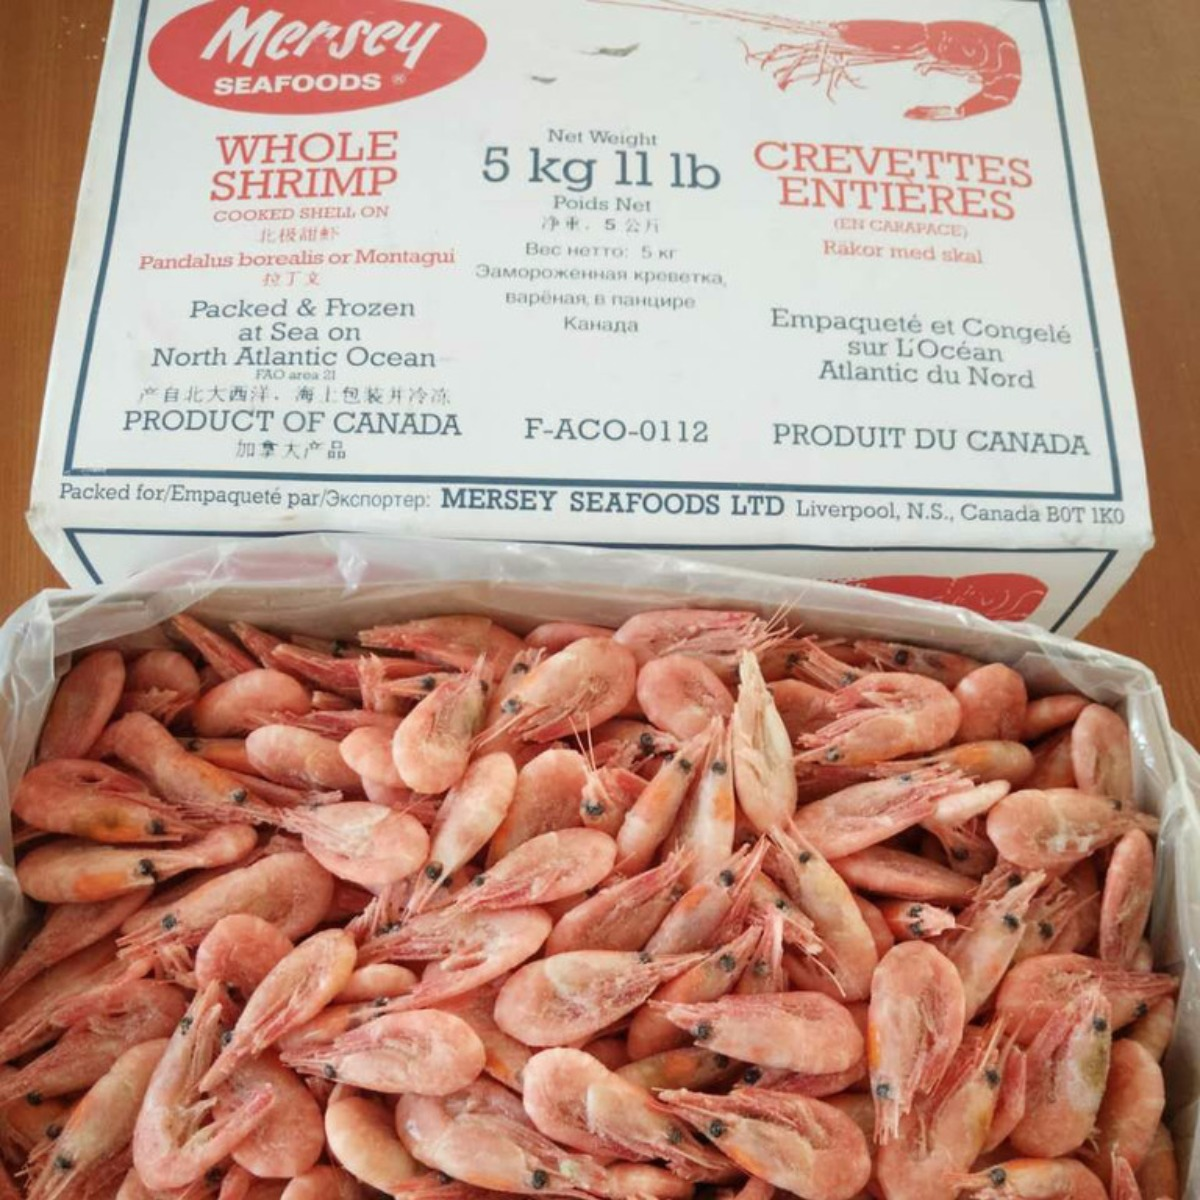 Mersey Whole Shrimp 北极甜虾 11 Lb (5kg)